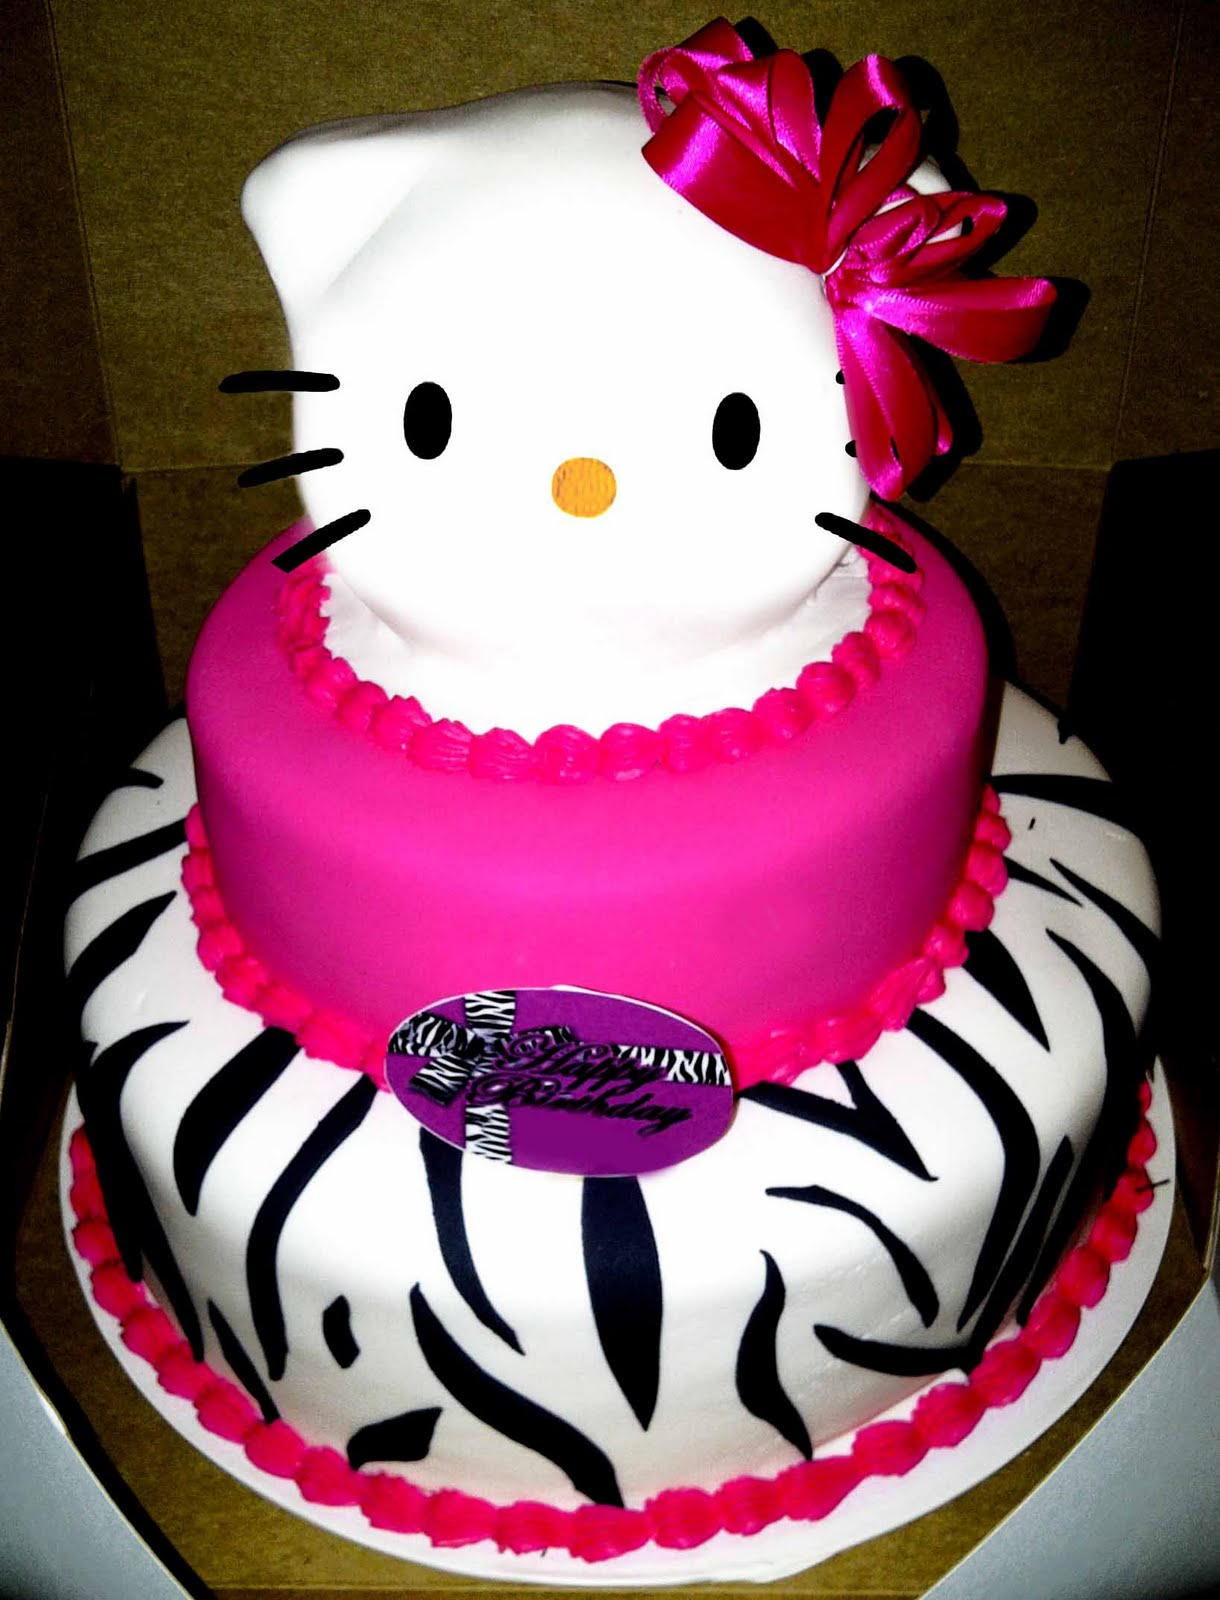 Images Of A Hello Kitty Cake : Hector s Custom Cakes: 3 Tiered Hello Kitty Cake